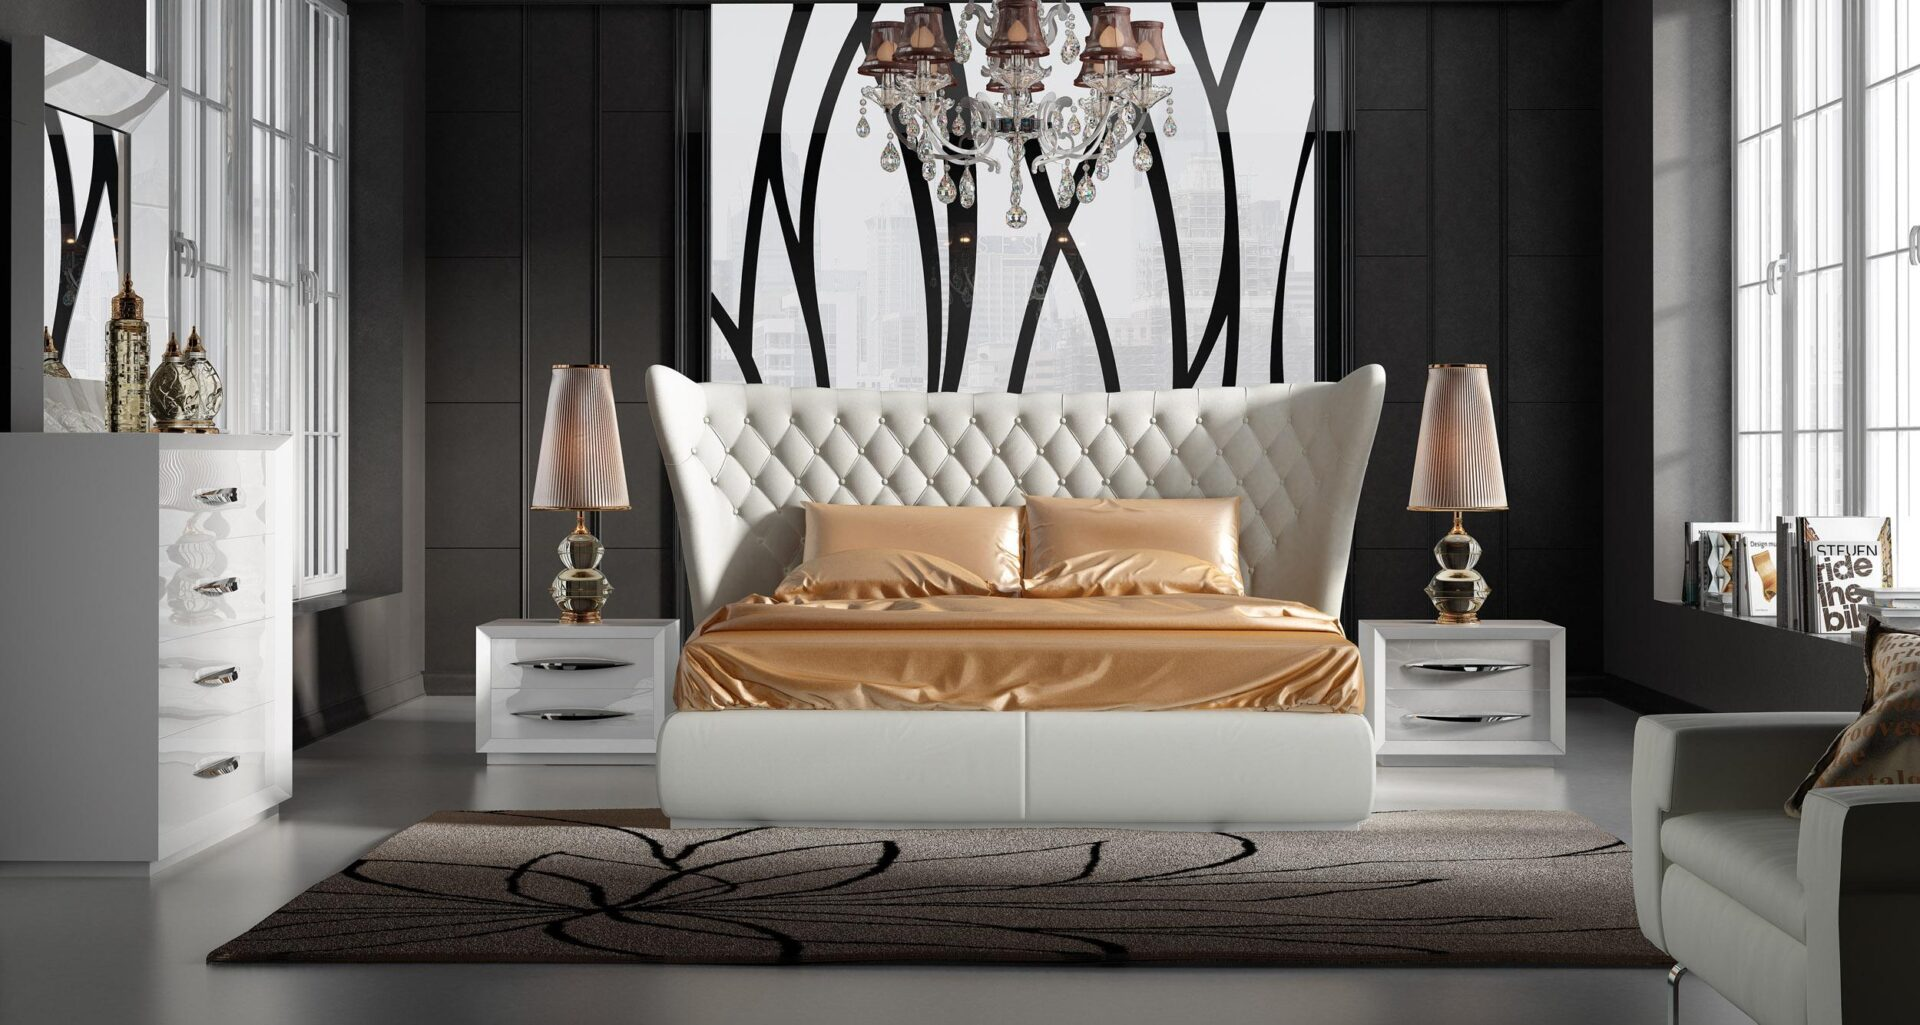 Bedroom Furniture Sets in Stylish Design